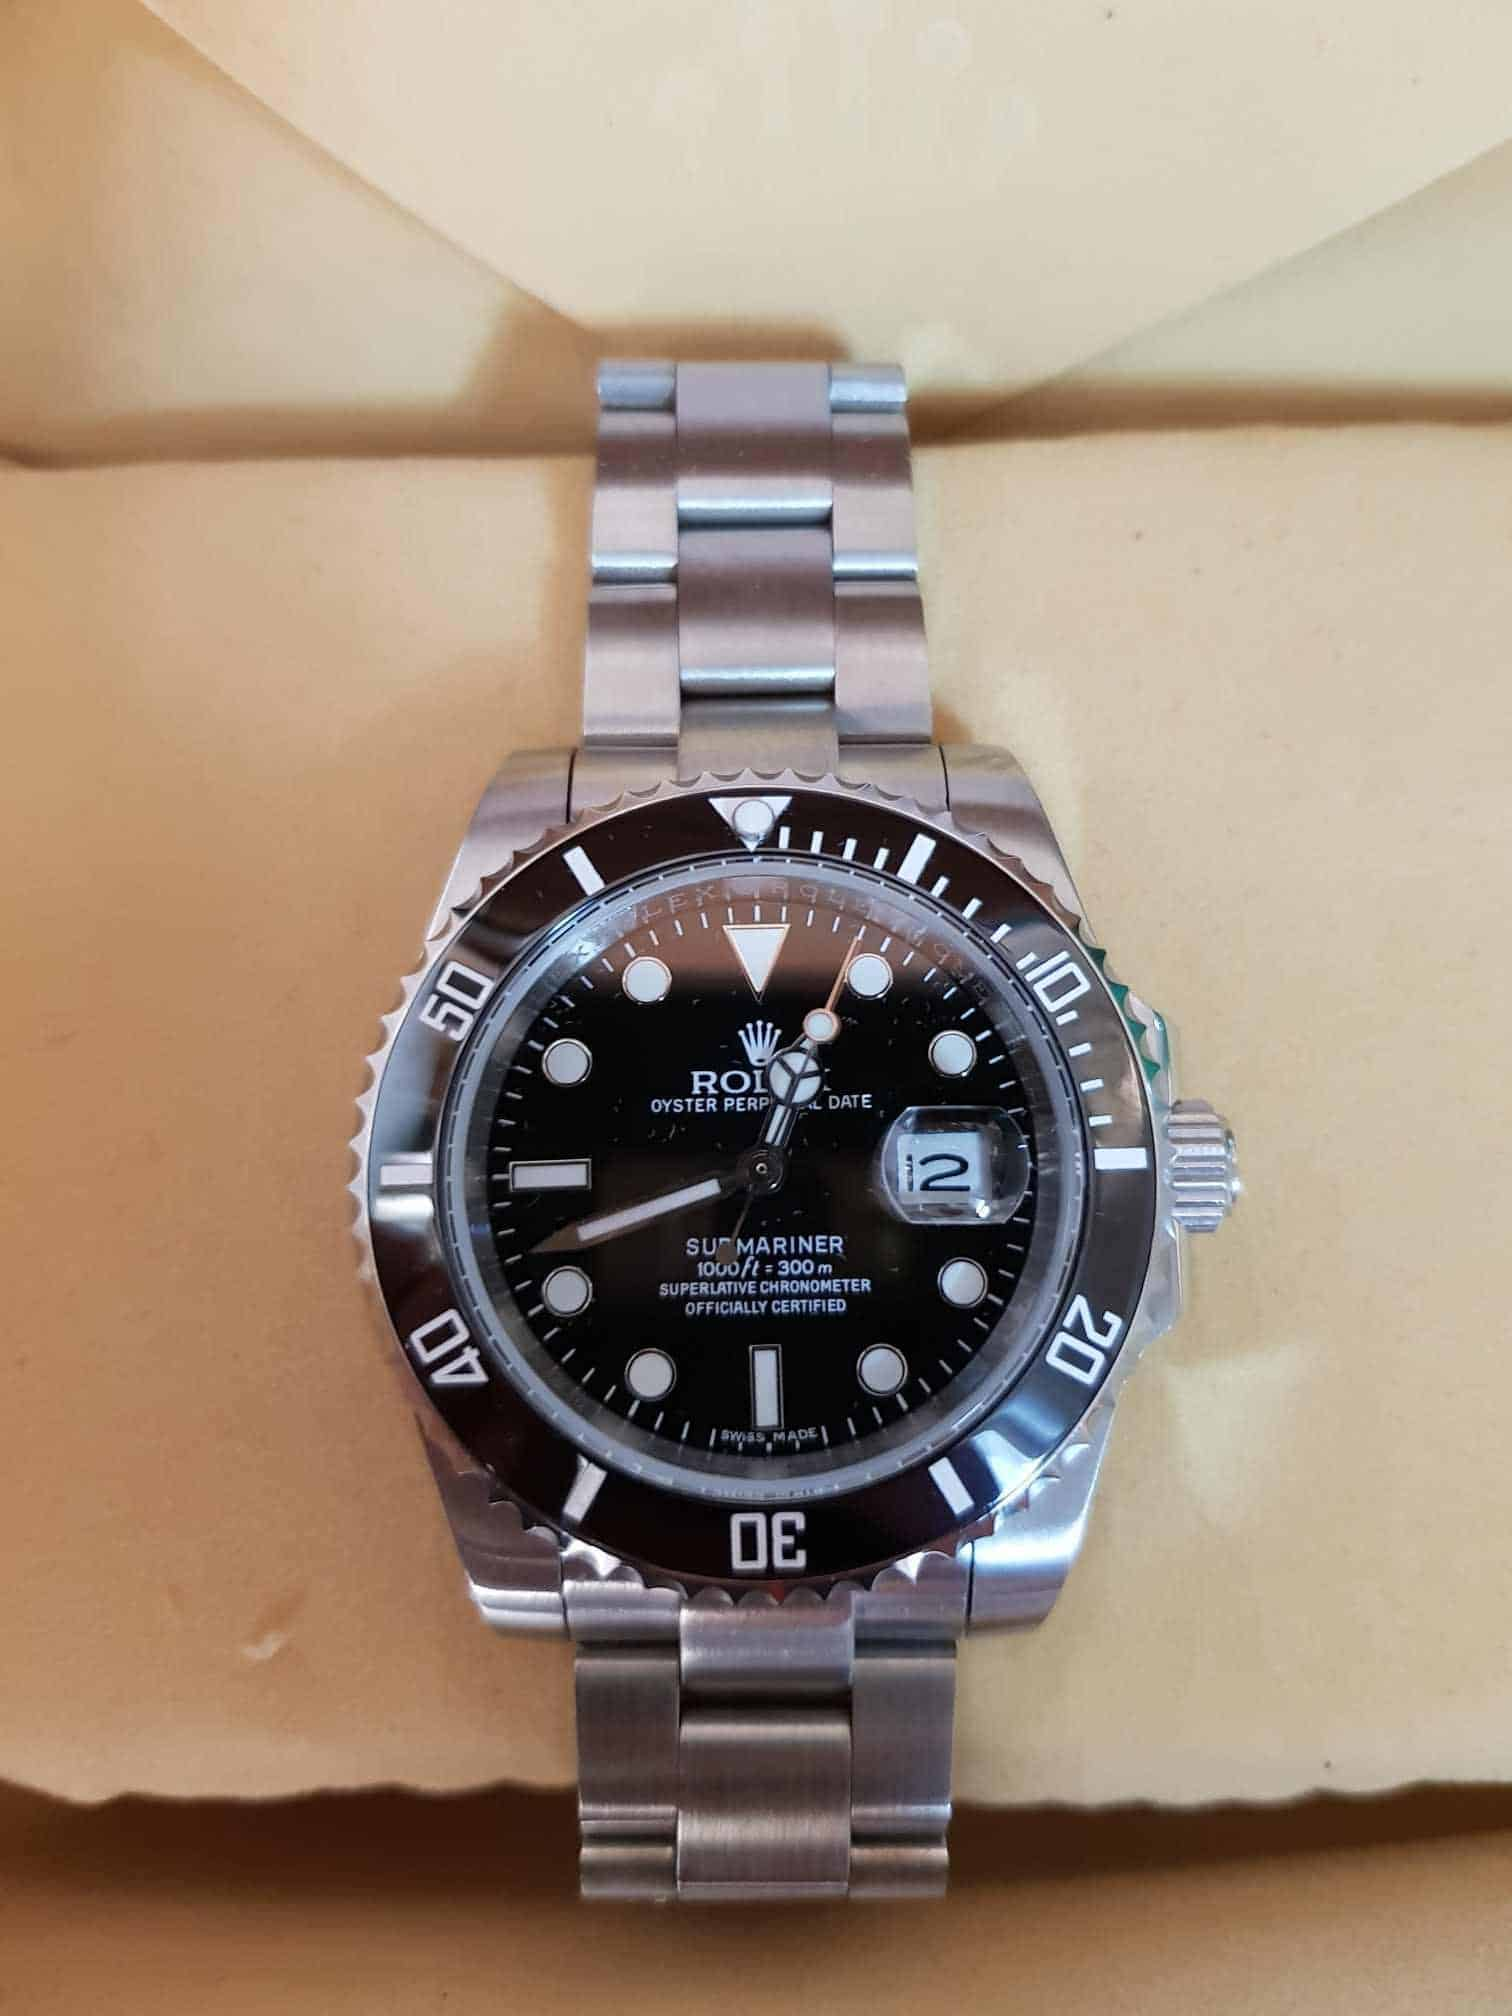 best DHGate Rolex Replica Review 2020 is Rolex Submariner. this is a classic most popular in US, Brazil, Europe.